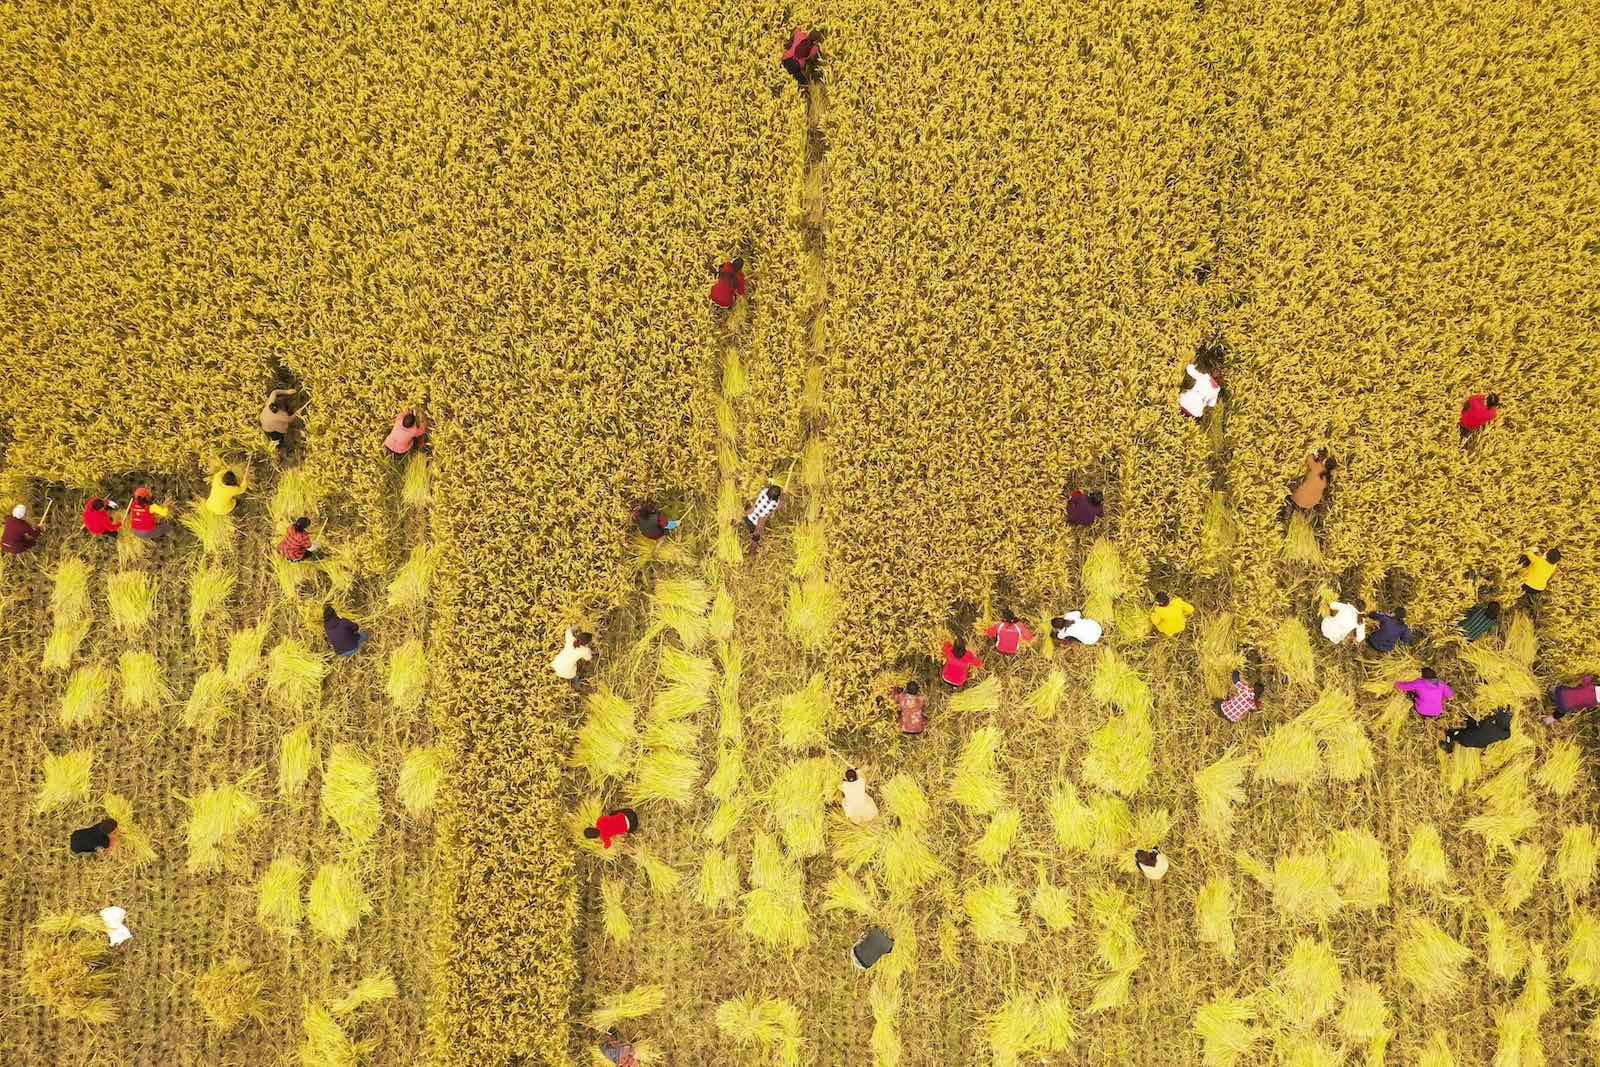 A rice harvest competition on 26 October in Sihong county, Jiangsu province, China (Photo: STR/AFP/Getty Images)